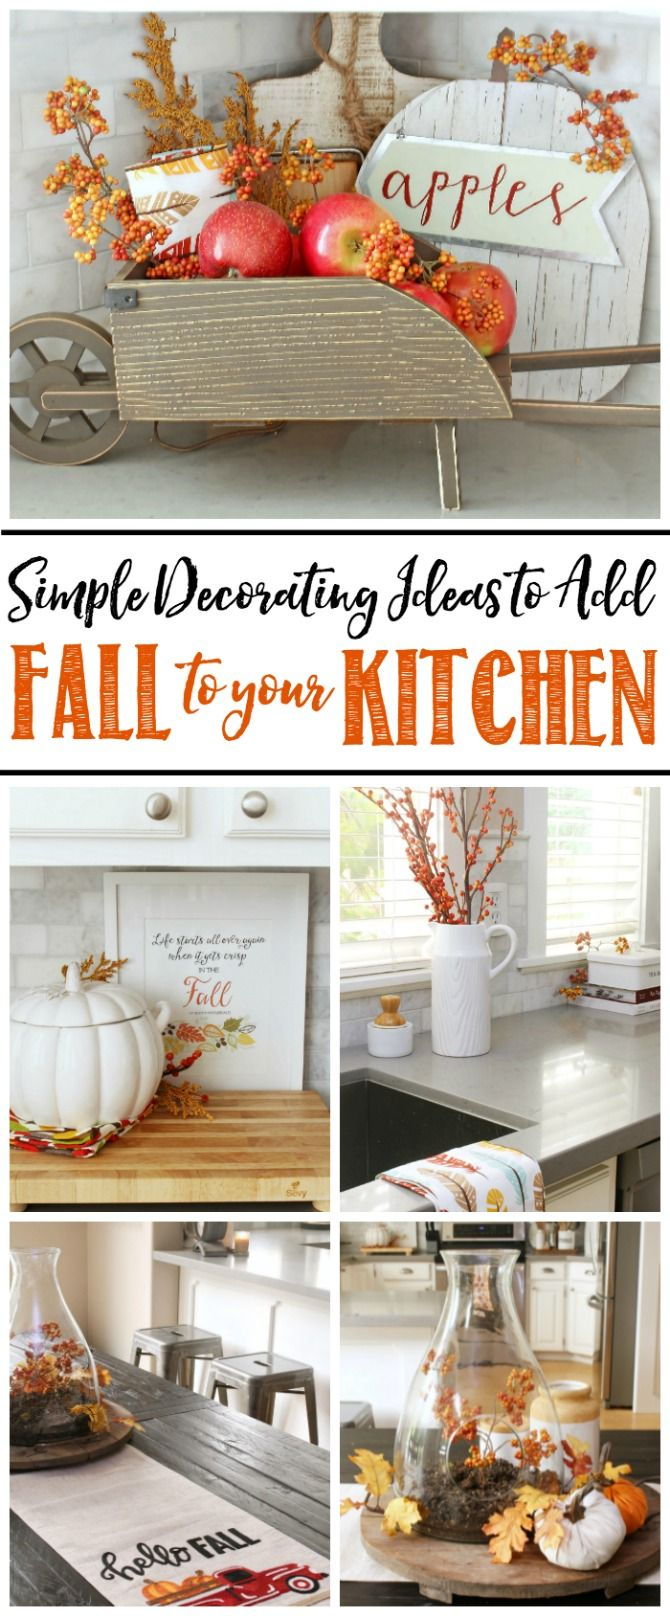 2944 best Autumn images on Pinterest | Fall crafts, Diy fall crafts ...